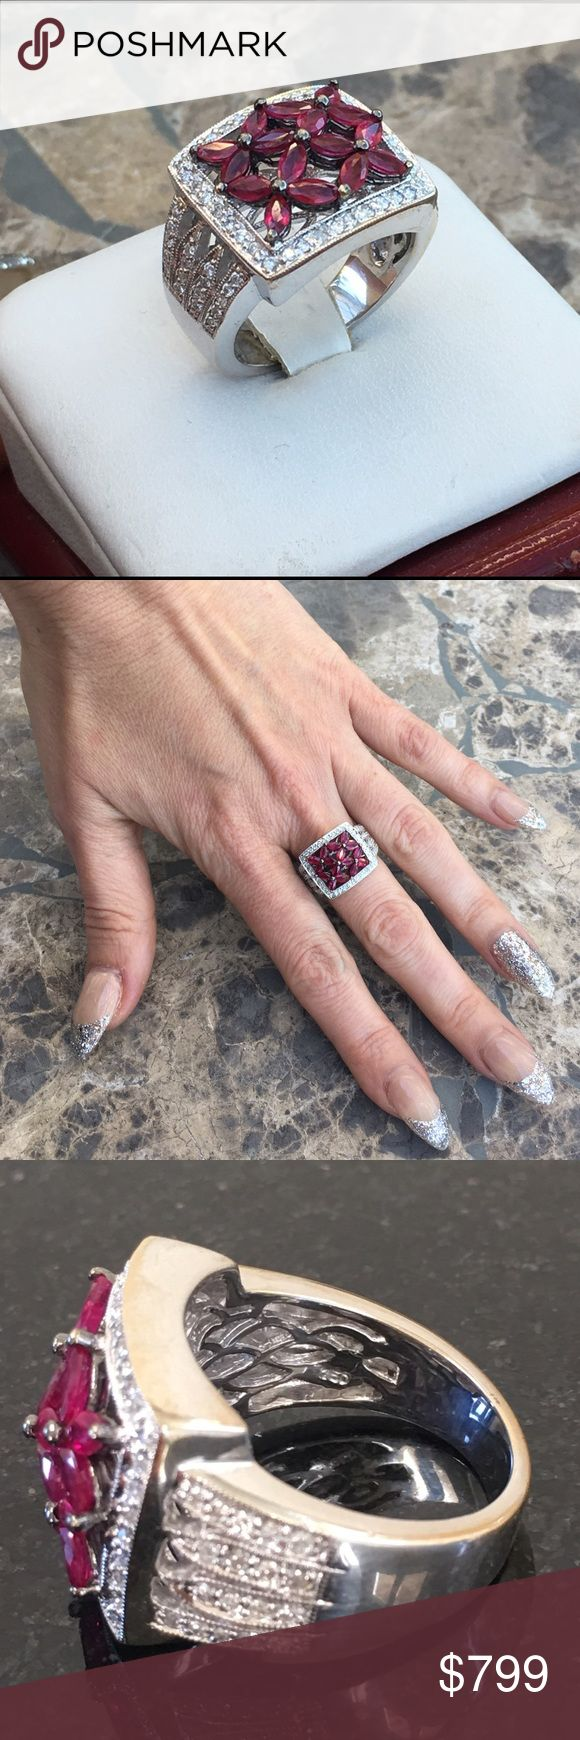 Estate ruby diamond ring 18k white gold 2.5 tcw Stunning estate ruby and diamond halo ring! 18k white gold, 16 marquis rubies 2.08 tcw and 72 round diamonds .43 tcw. Gorgeous condition ! Size 6.5 very comfortable band. Total weight of gold is 11.7 gr. Ring has been appraised at $6855 and appraisal will be included. Happy to provide more photos to serious buyers. No trades please 😍 Jewelry Rings